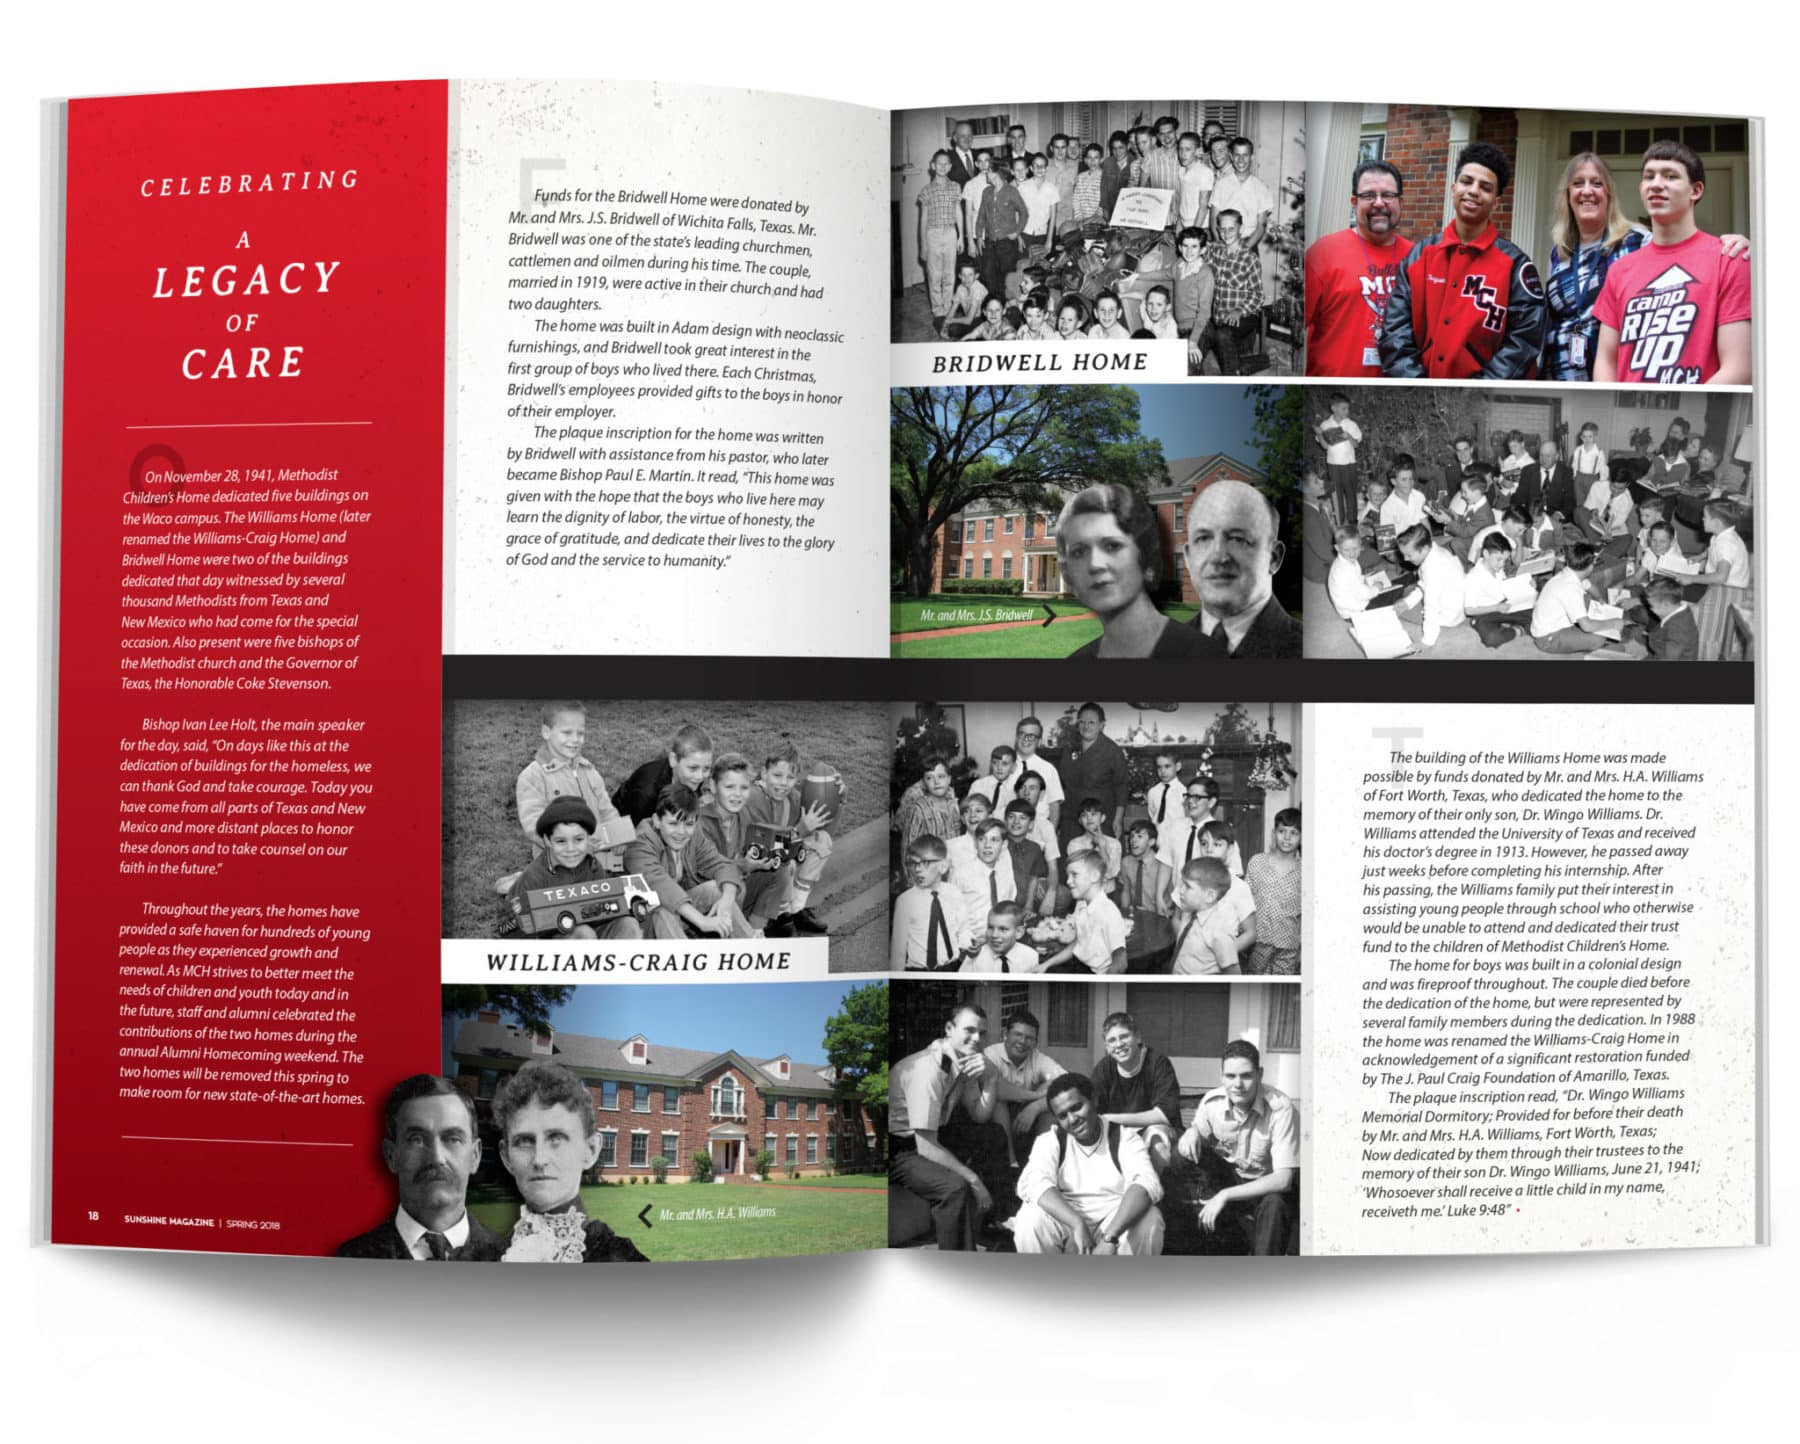 Celebrating a Legacy of Care Spread